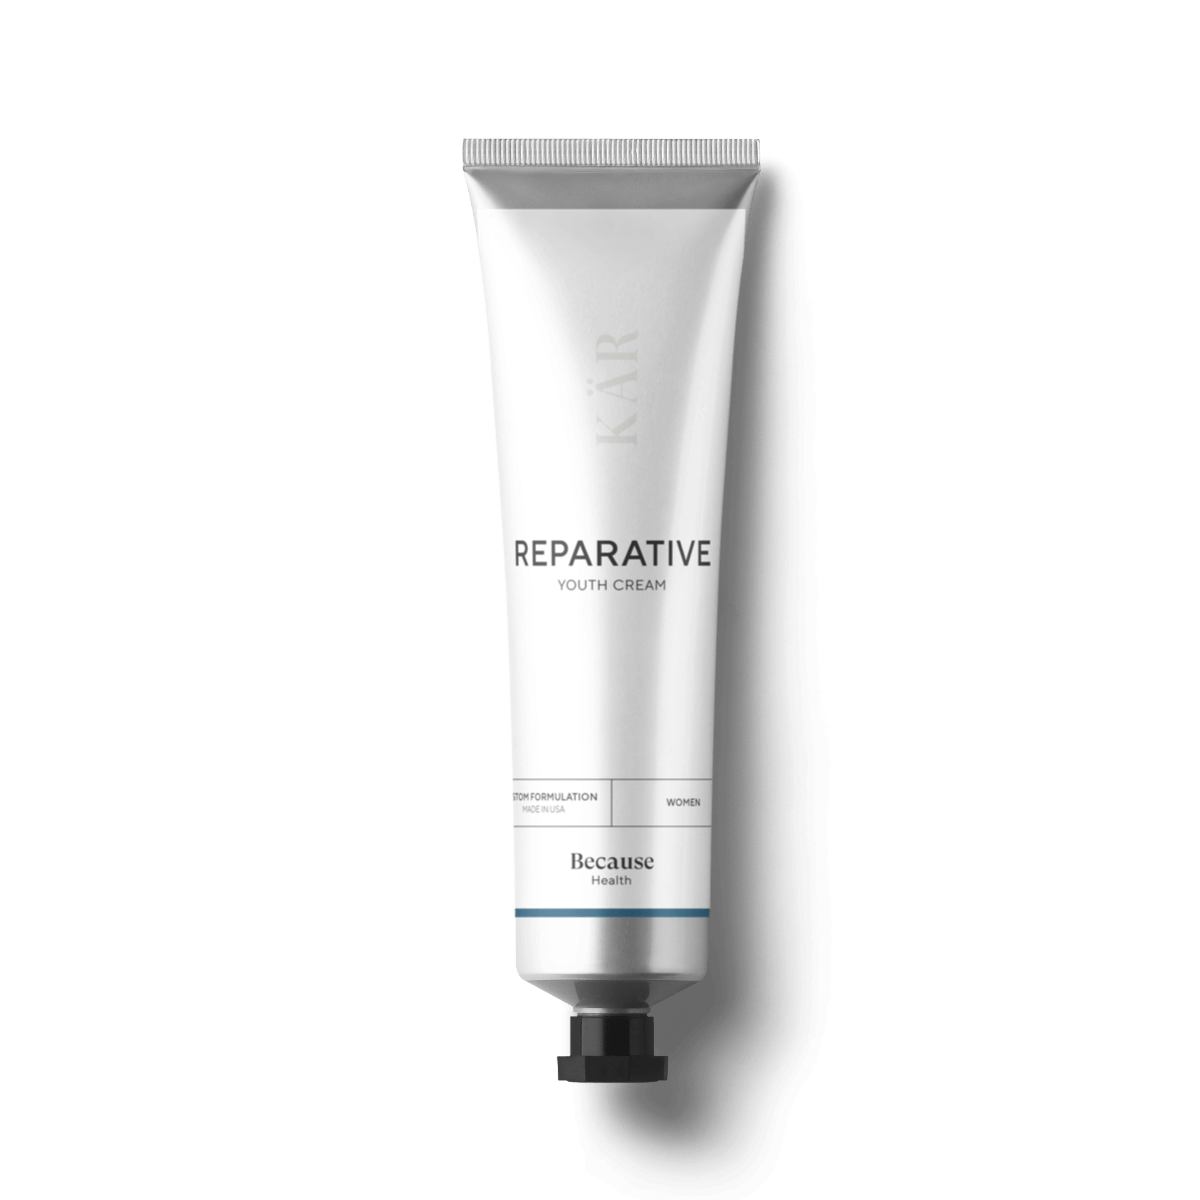 Reparative Youth Cream